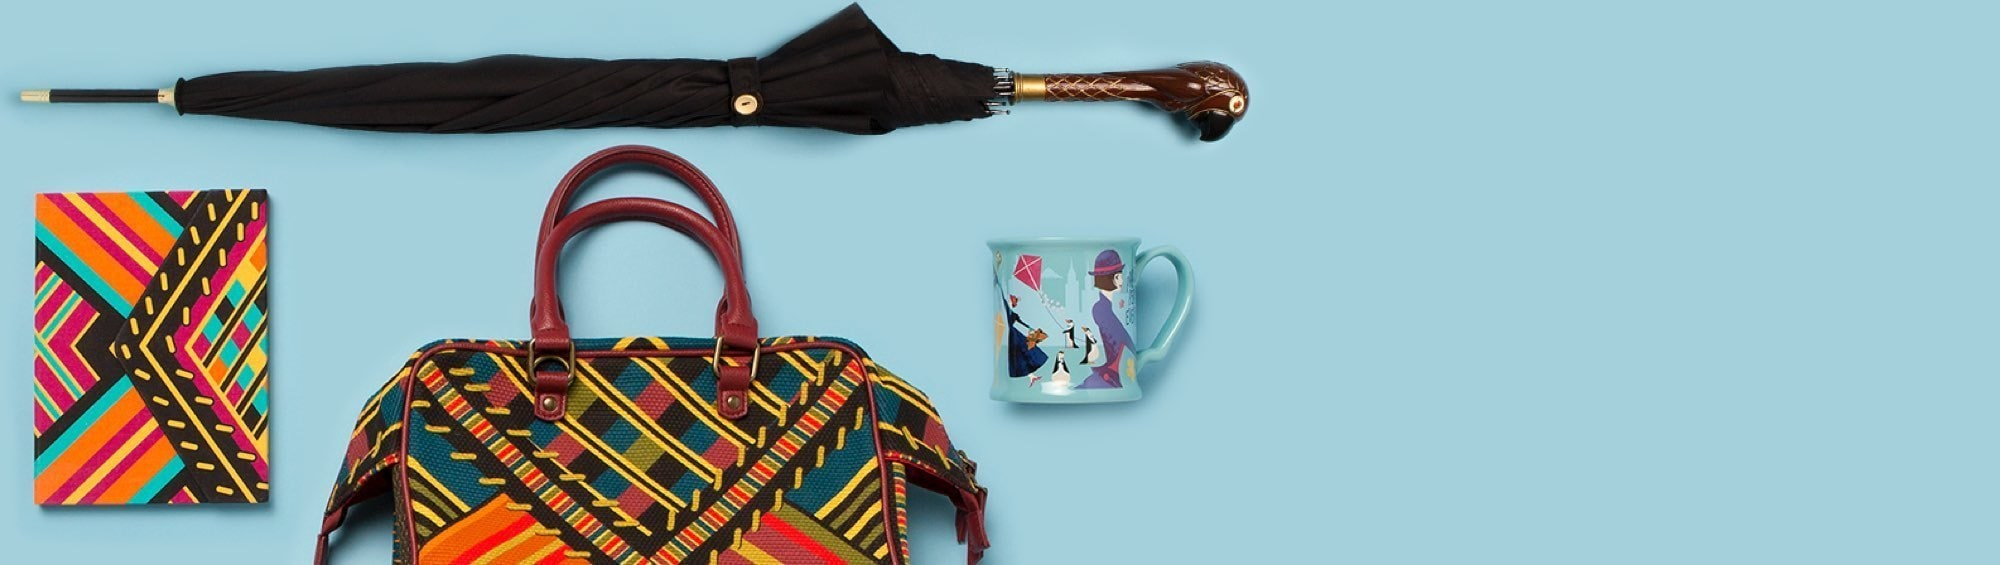 shop the Mary Poppins Returns Collection at shopDisney